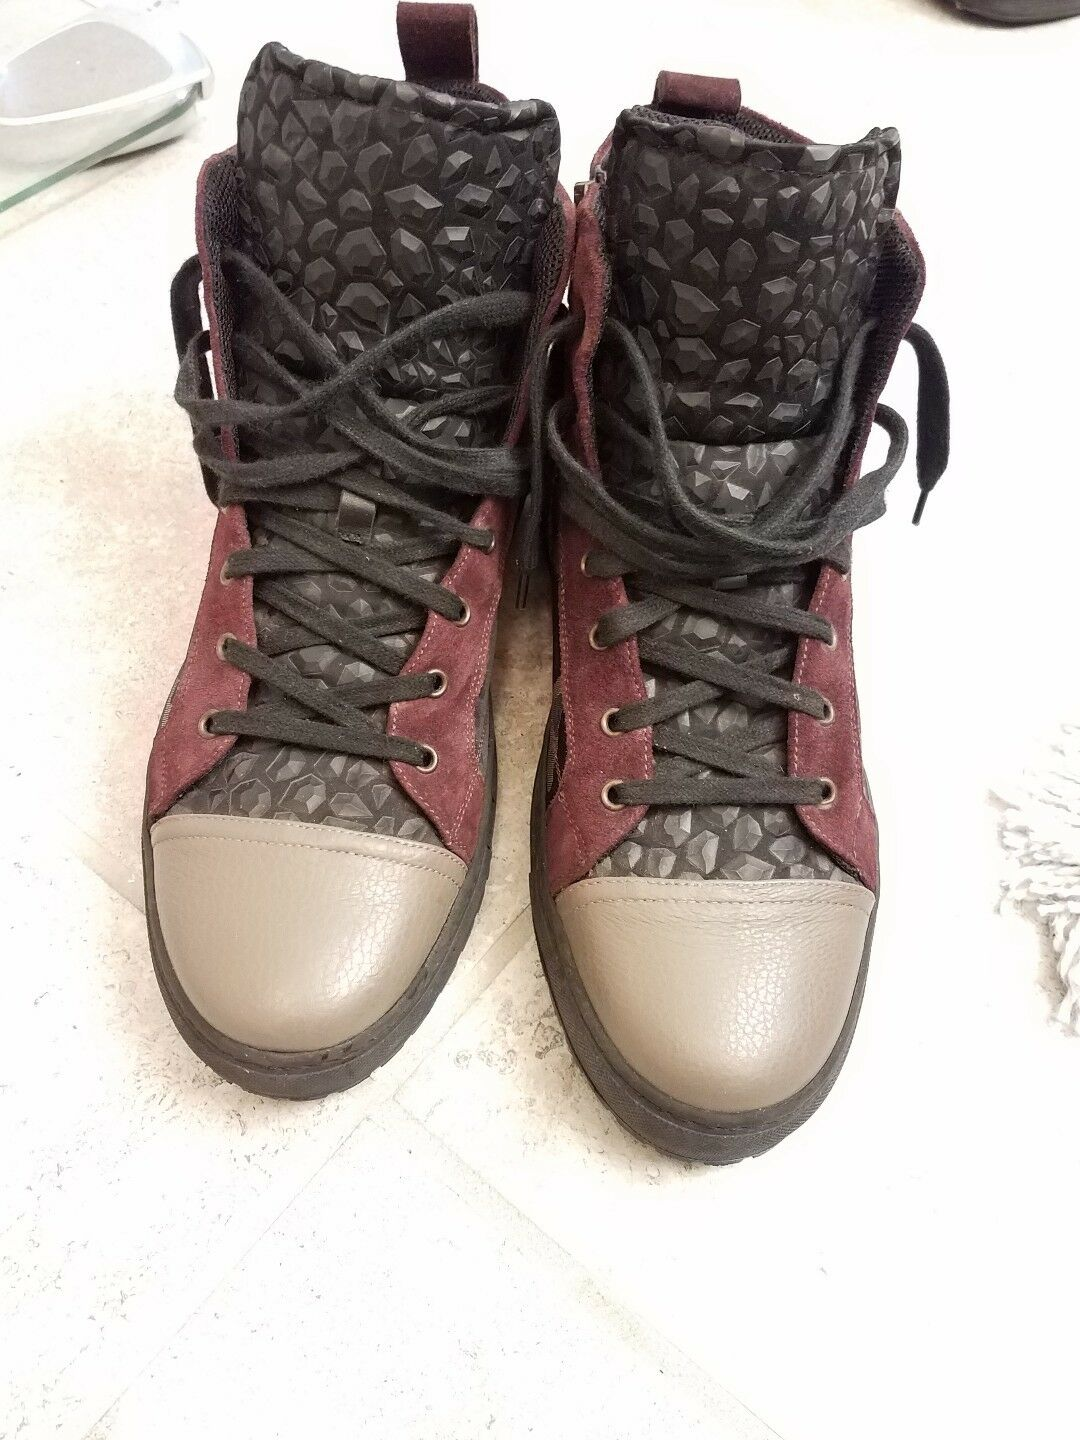 Men John Gagliano Camo Boots size 13 suede leather.   1000